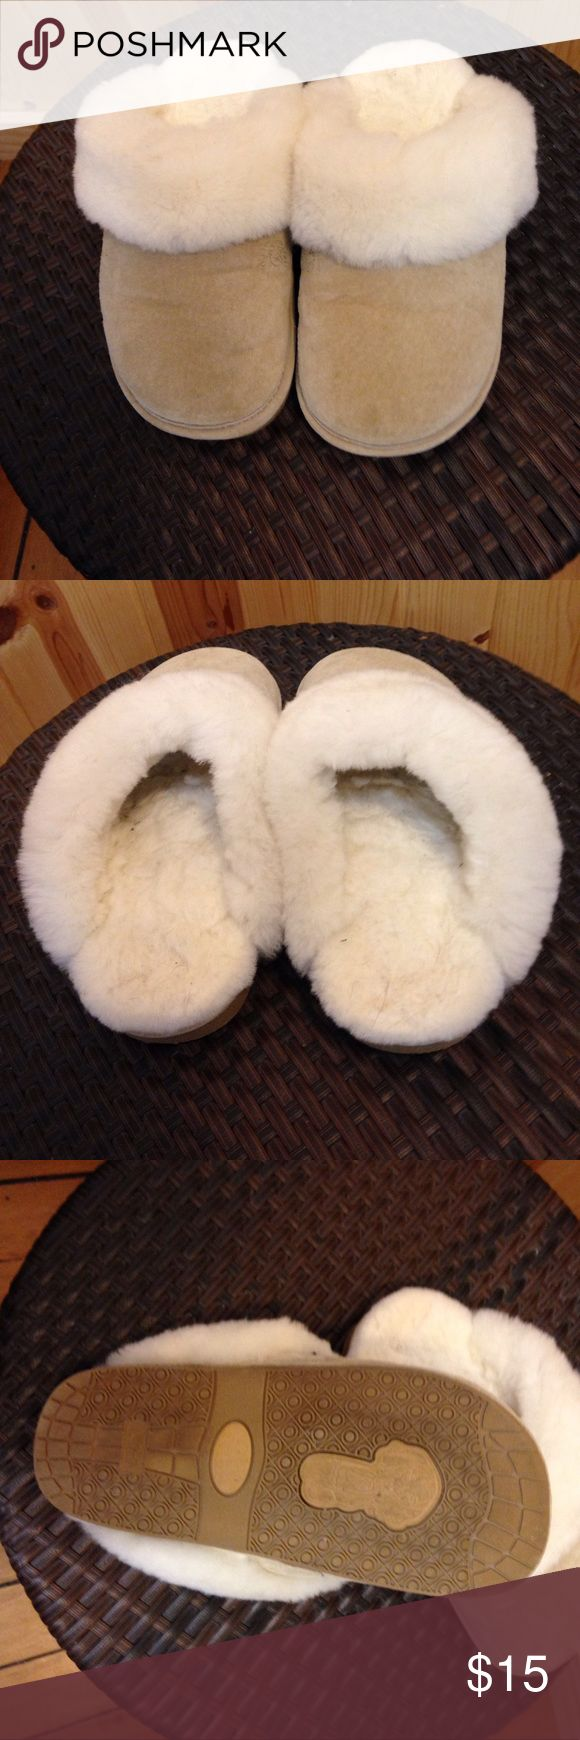 Fuzzy slippers Ugg looking slippers.  Very warm.  Wore around my house and once in awhile, out to get the mail. old friend Shoes Slippers